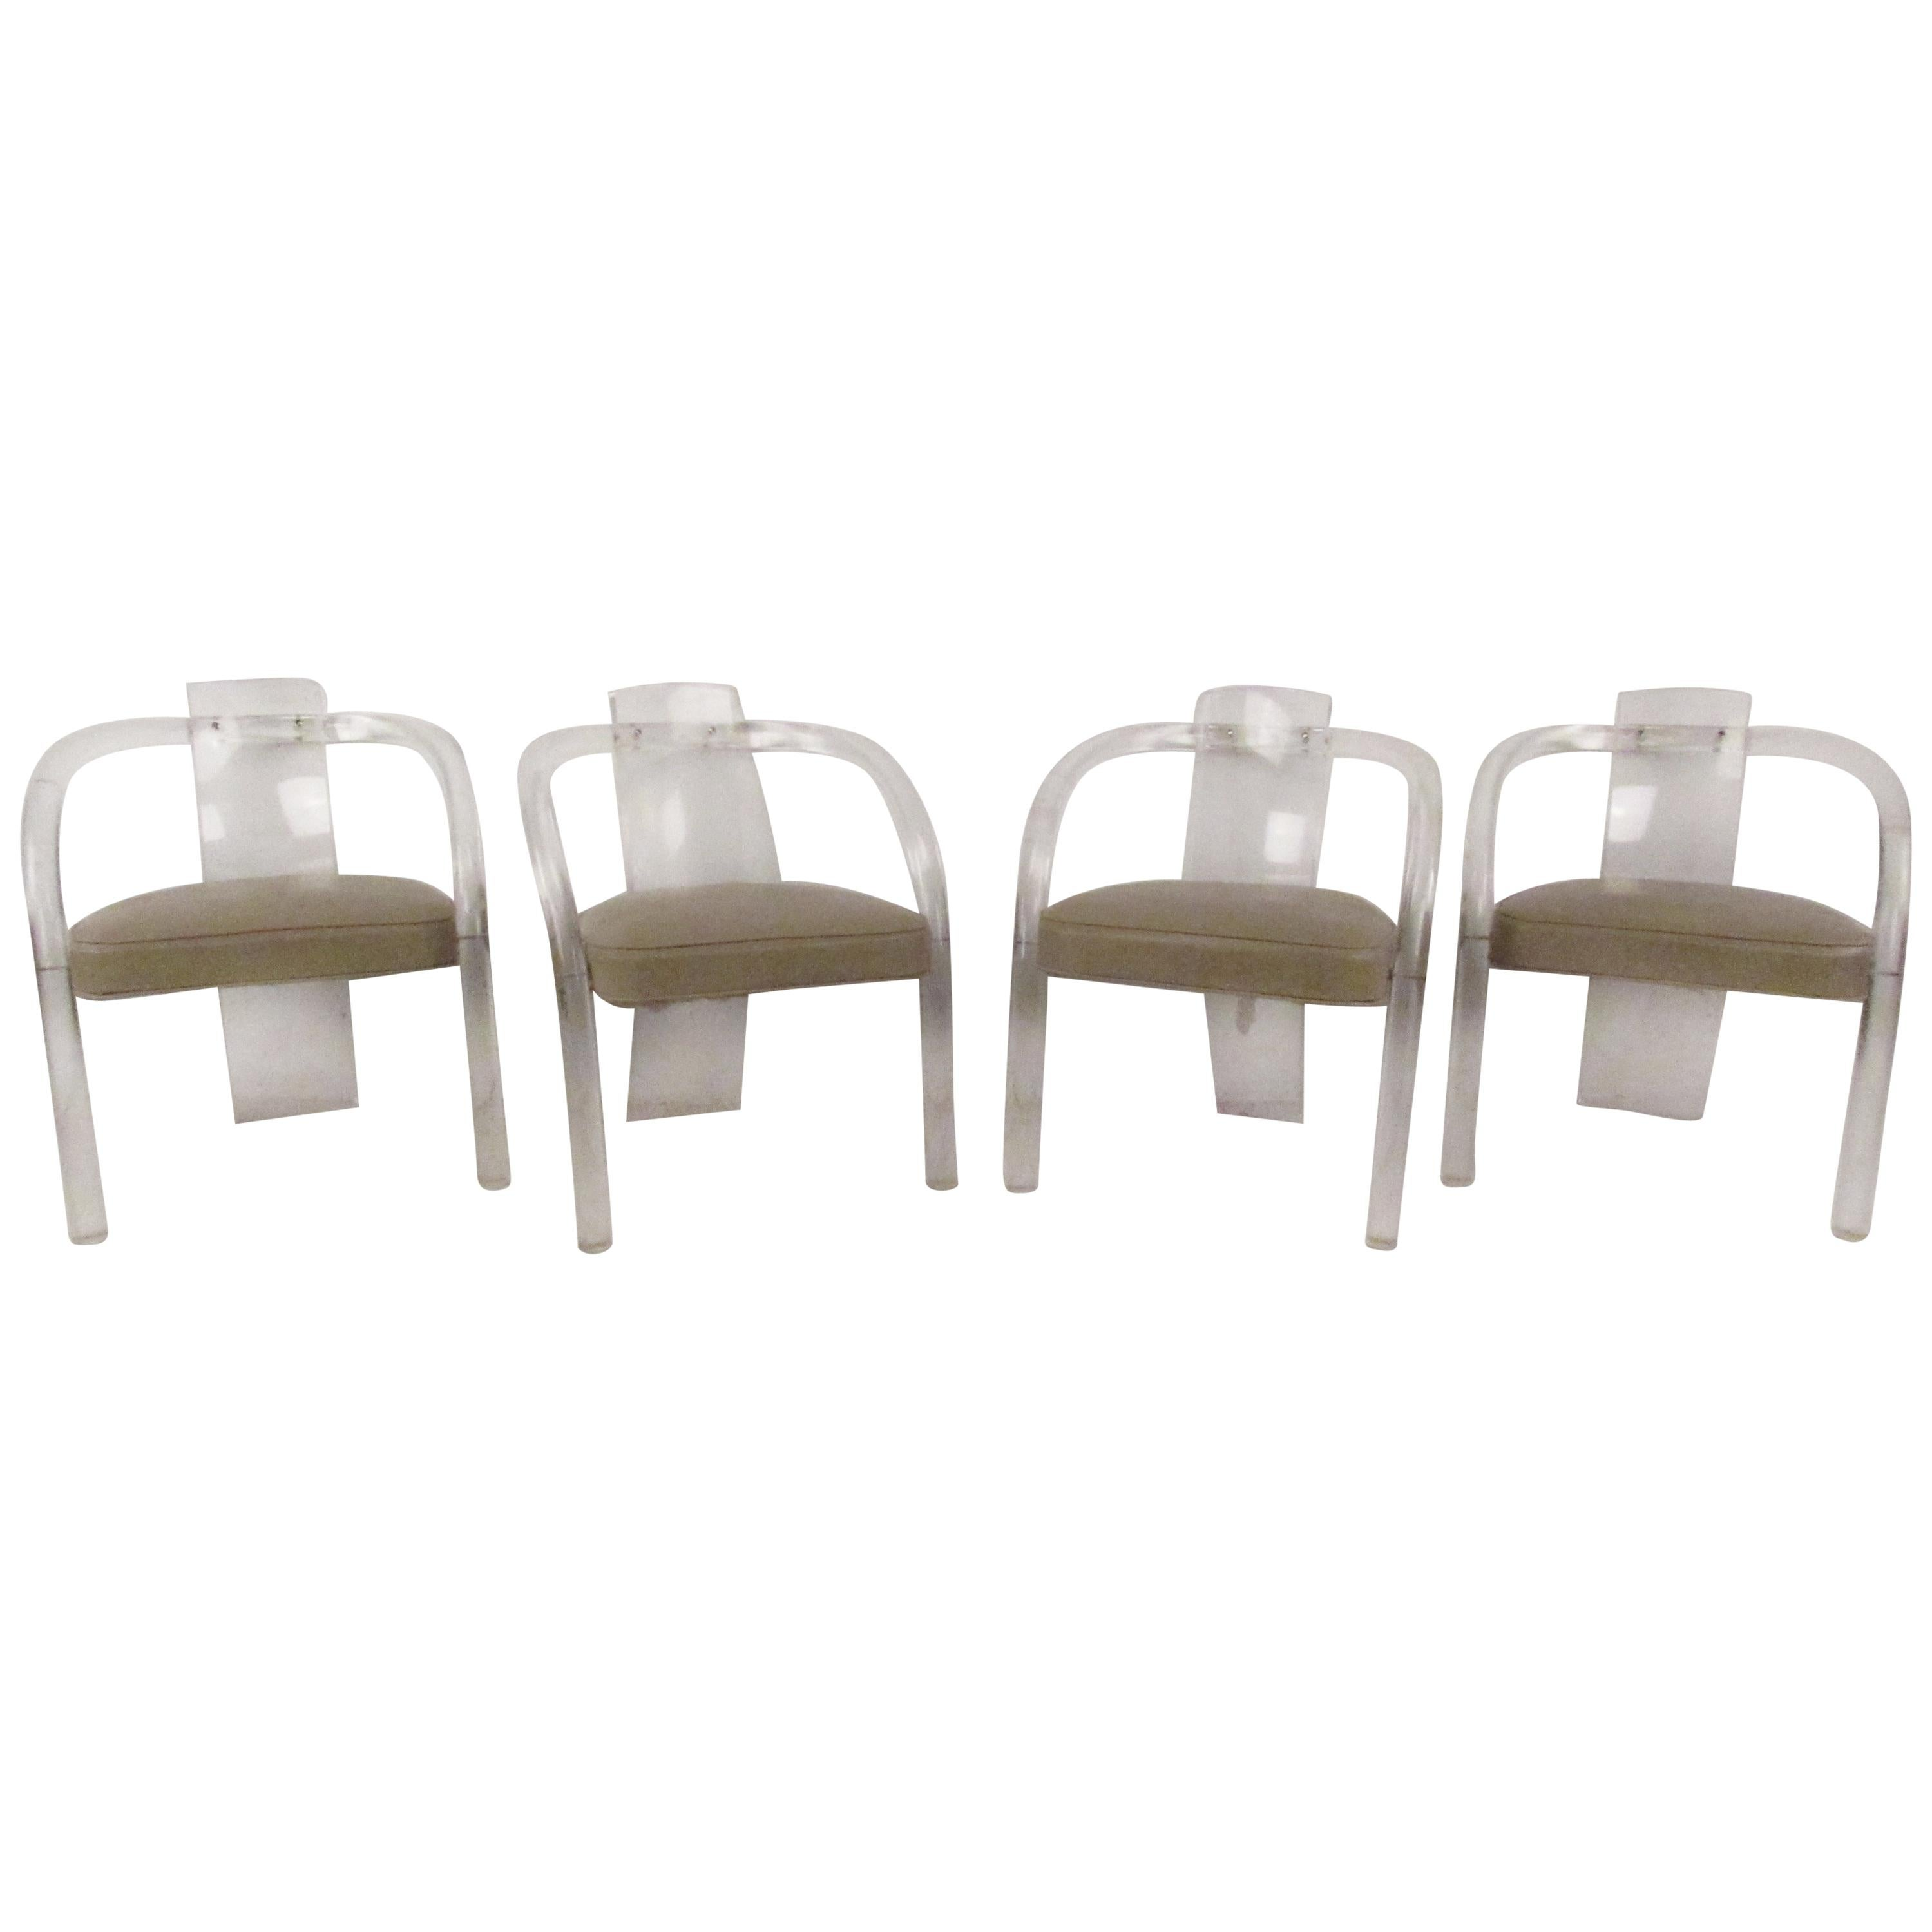 Set of Four Mid-Century Modern Lucite Dining Chairs